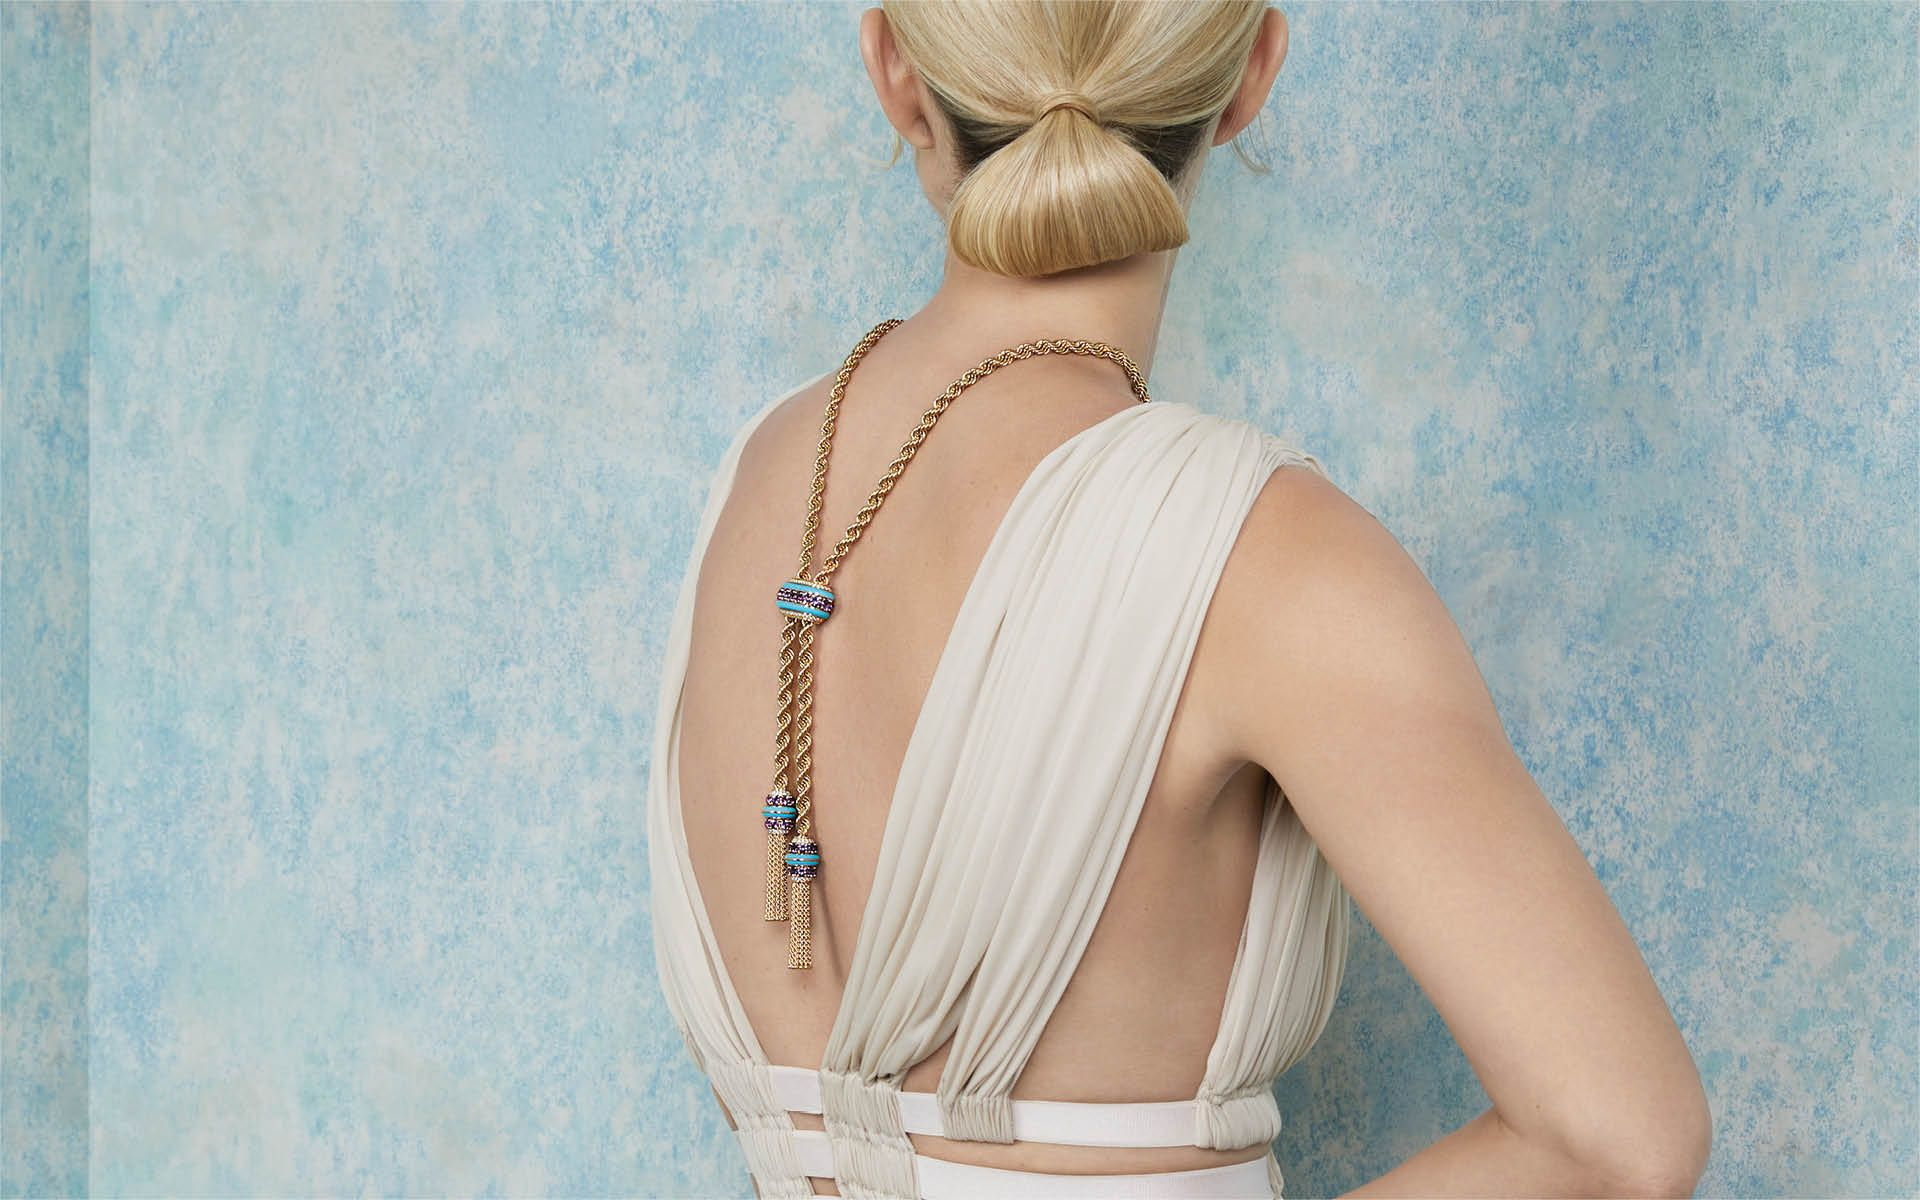 7 Unconventional Necklaces That Bring Sexy Back